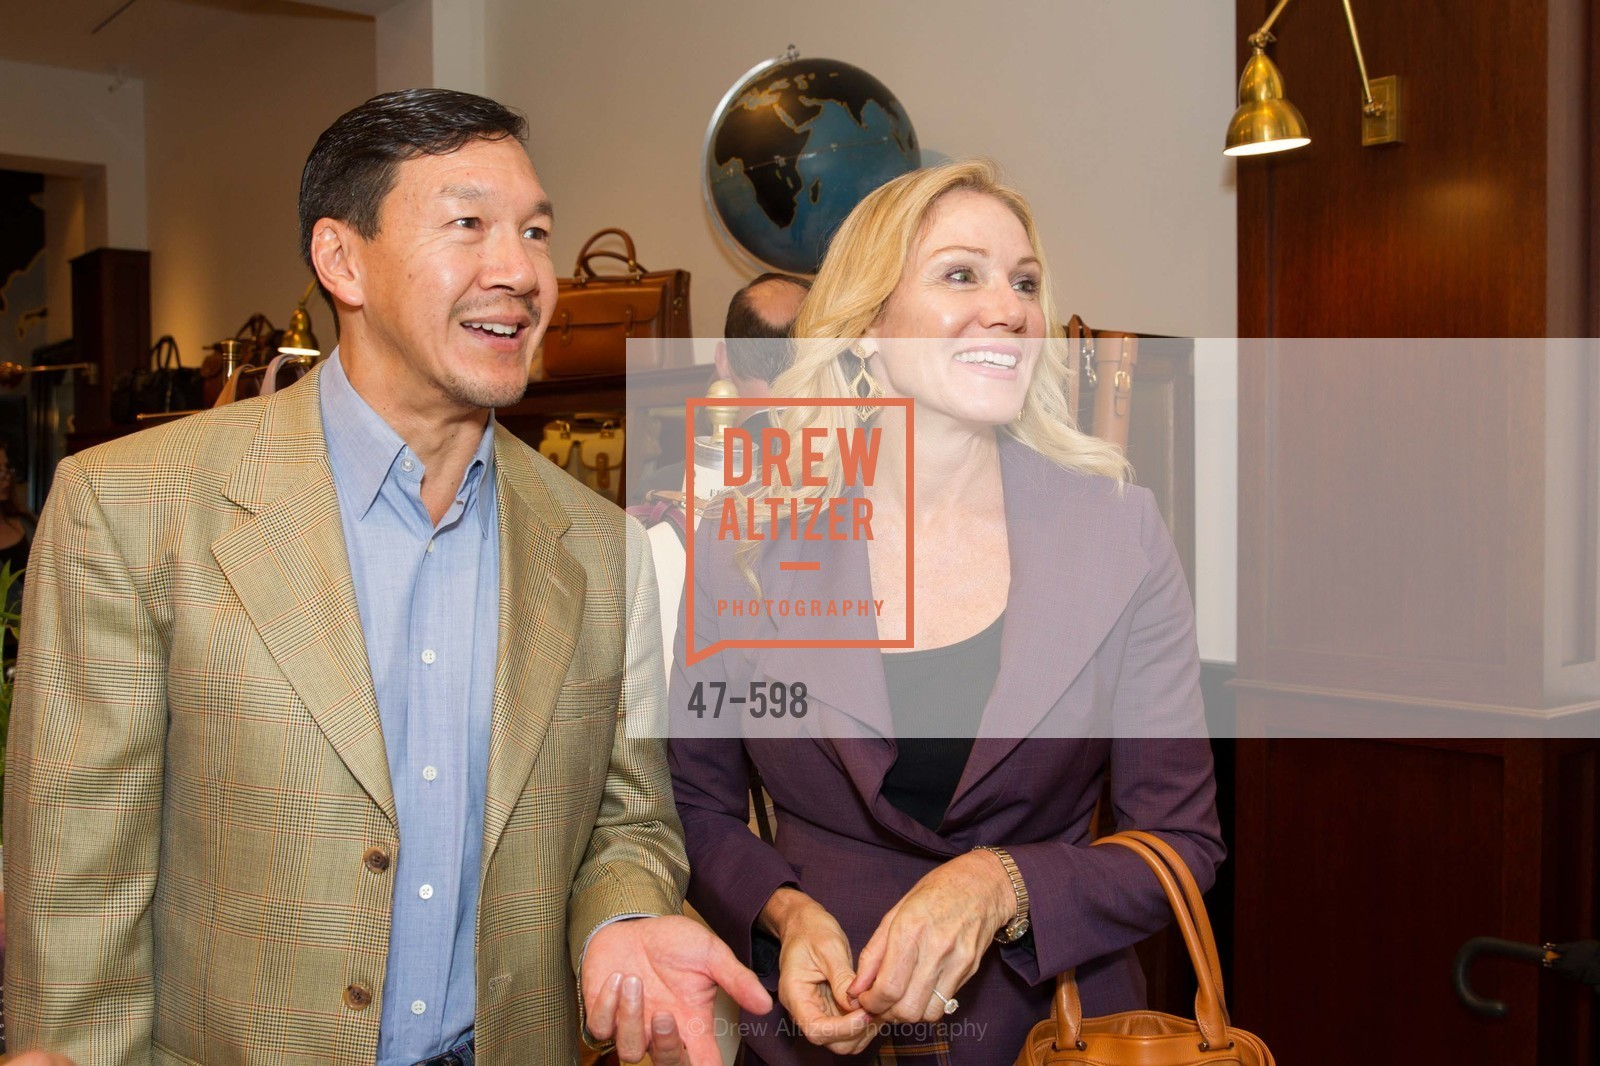 Tim Wu, Rosemary Baker, GHURKA FALL FASHION Press Preview Honoring the ZOO BOARD, US, October 8th, 2014,Drew Altizer, Drew Altizer Photography, full-service agency, private events, San Francisco photographer, photographer california